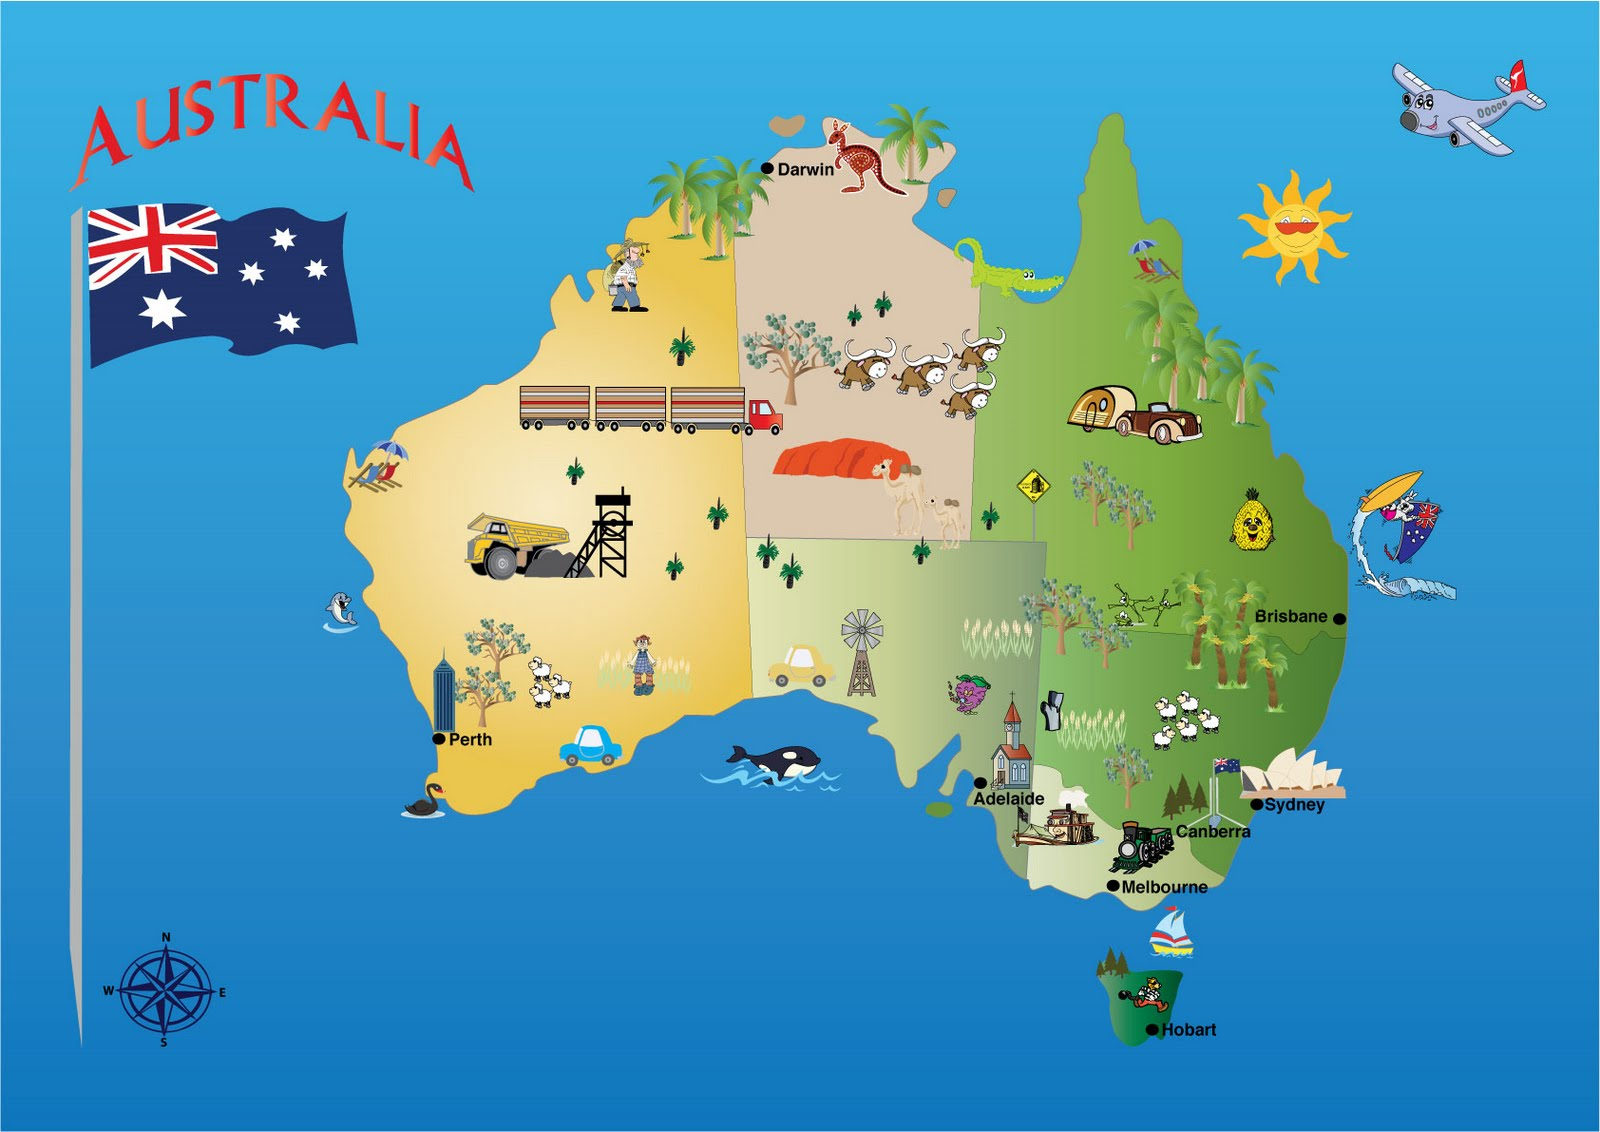 Map Of Australia mazahjornaldomsn – Australia Tourist Attractions Map